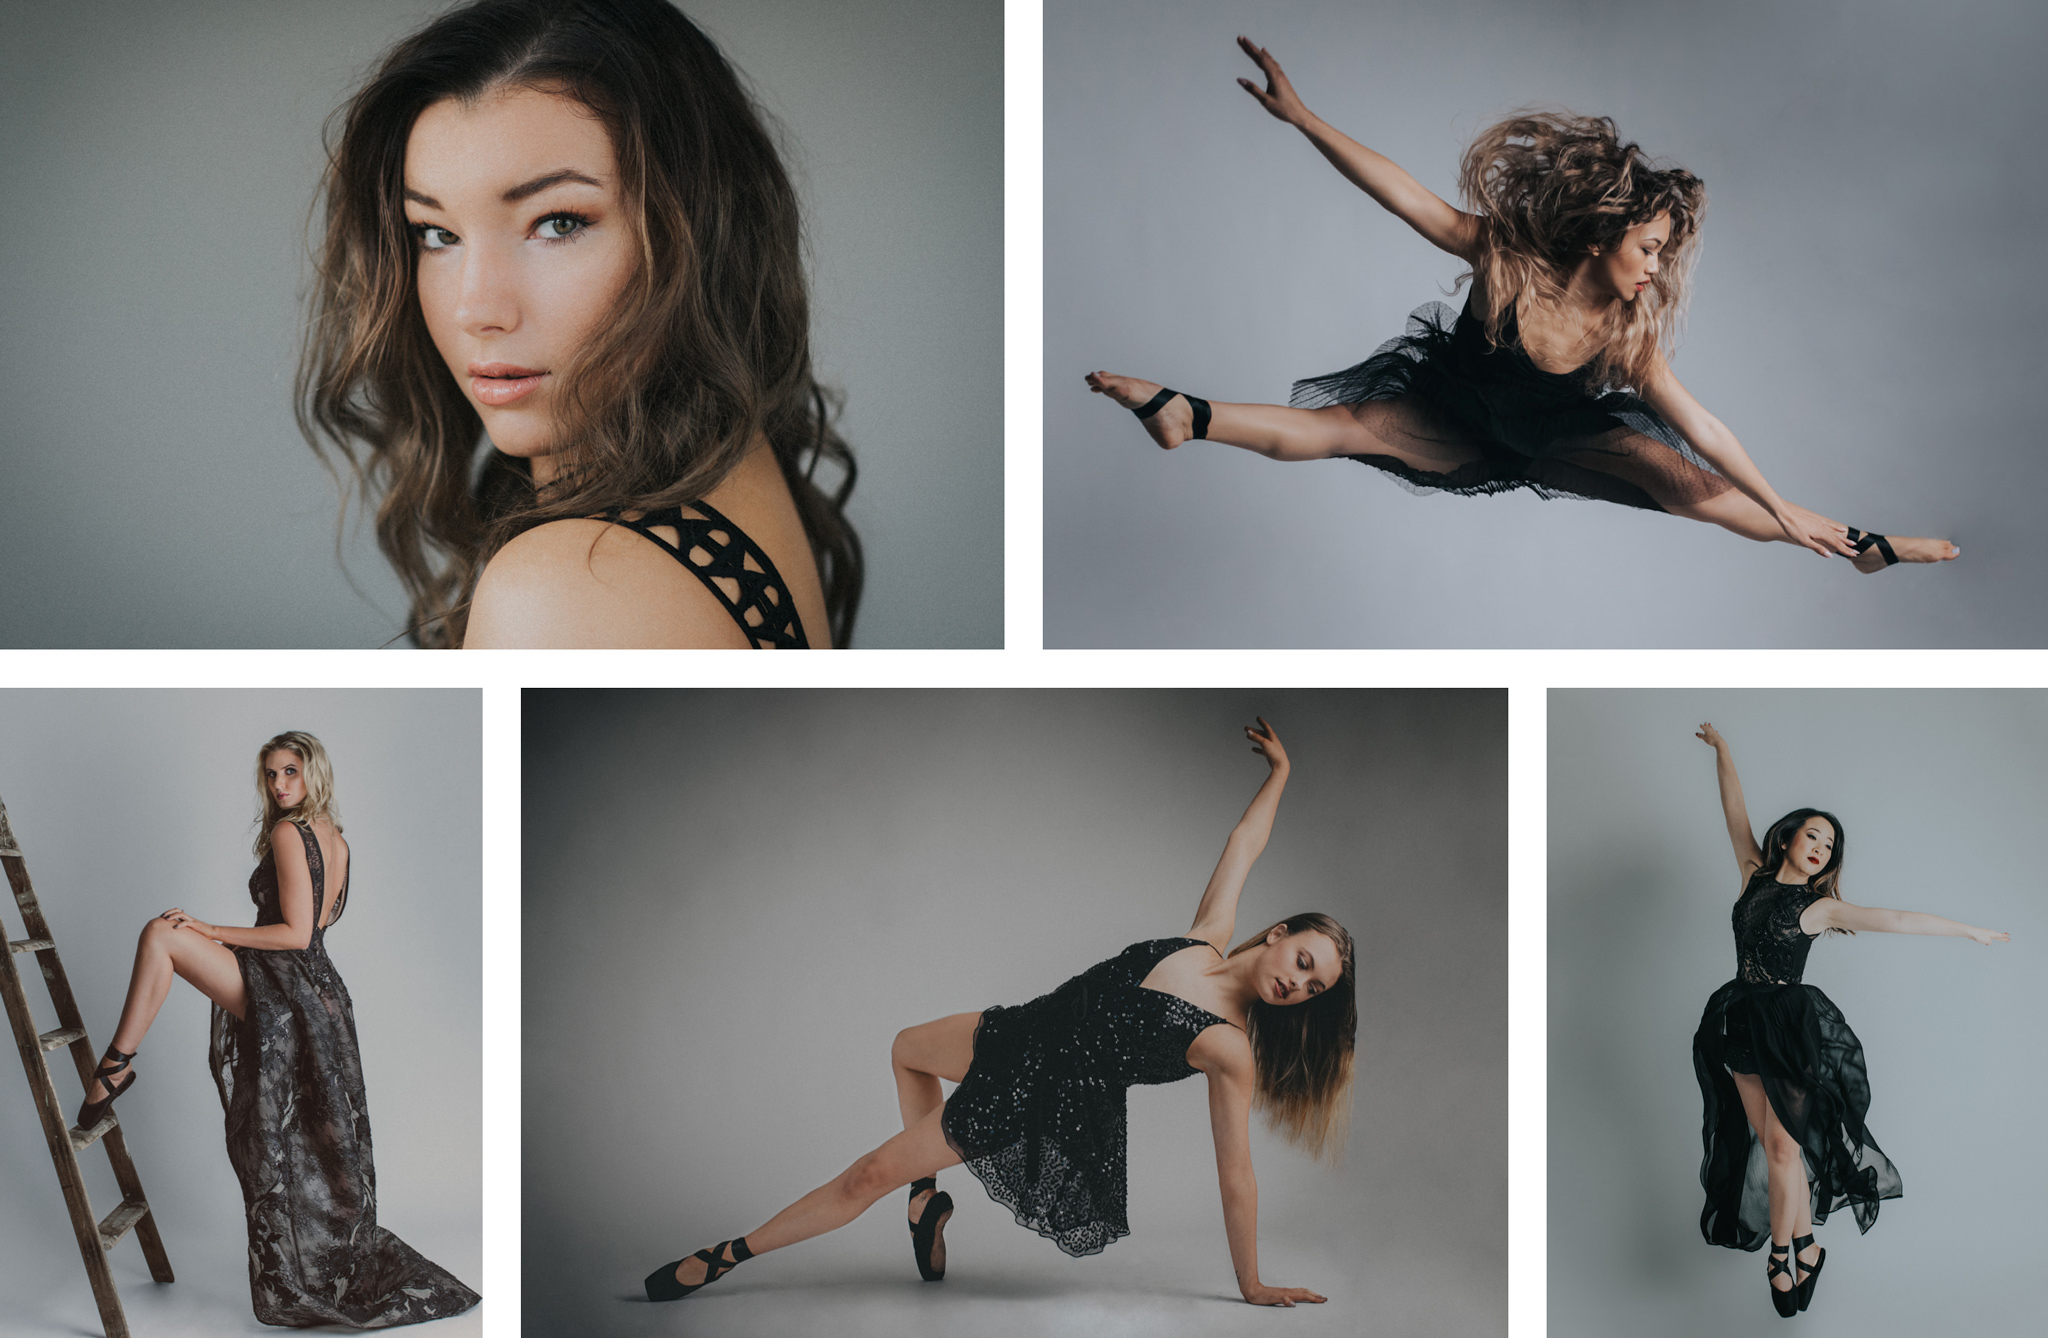 best dance photography in melbourne - Souri creates stunning photographs in the series ballerina en noir in Melbourne. Studio Dance Photography with a creative touch - black dresses.